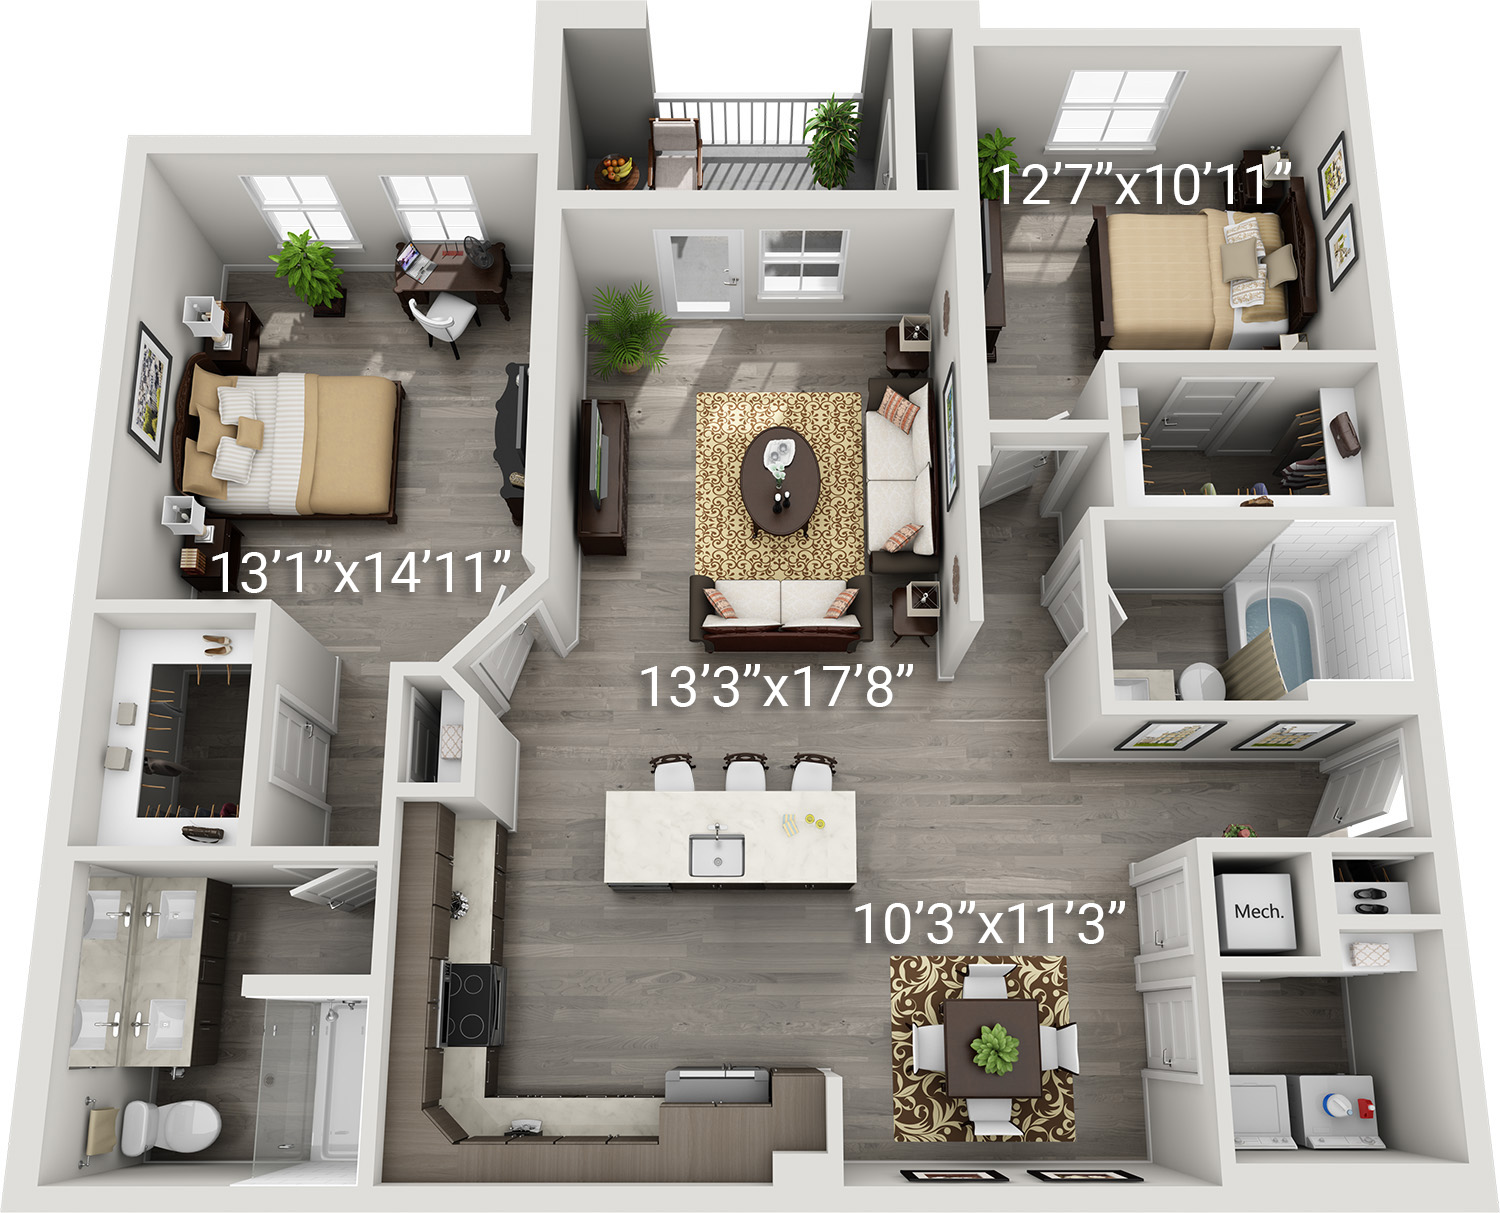 2 Bedroom 2 Bath<br>(Buccino - B5)